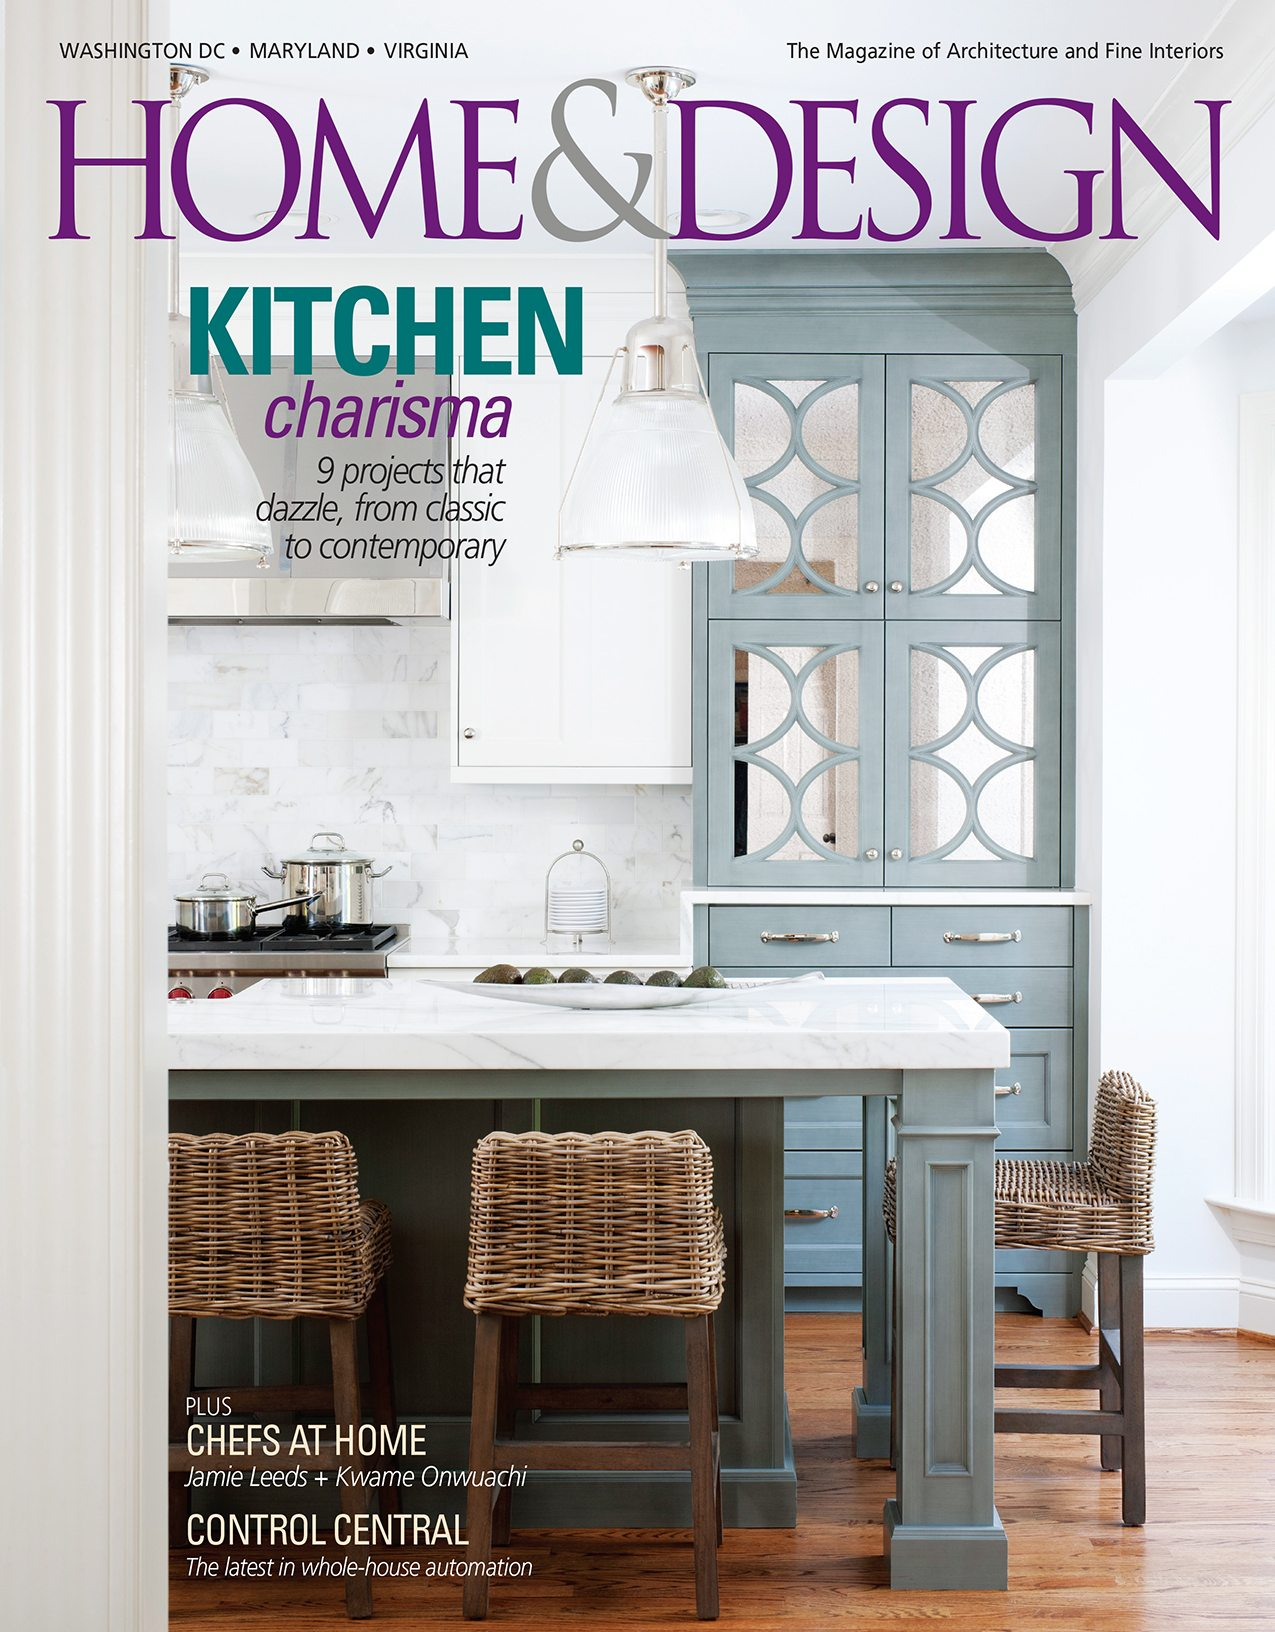 Http Tcnjaaa Org Plans California Home And Design Magazine Foxlin Architects Html